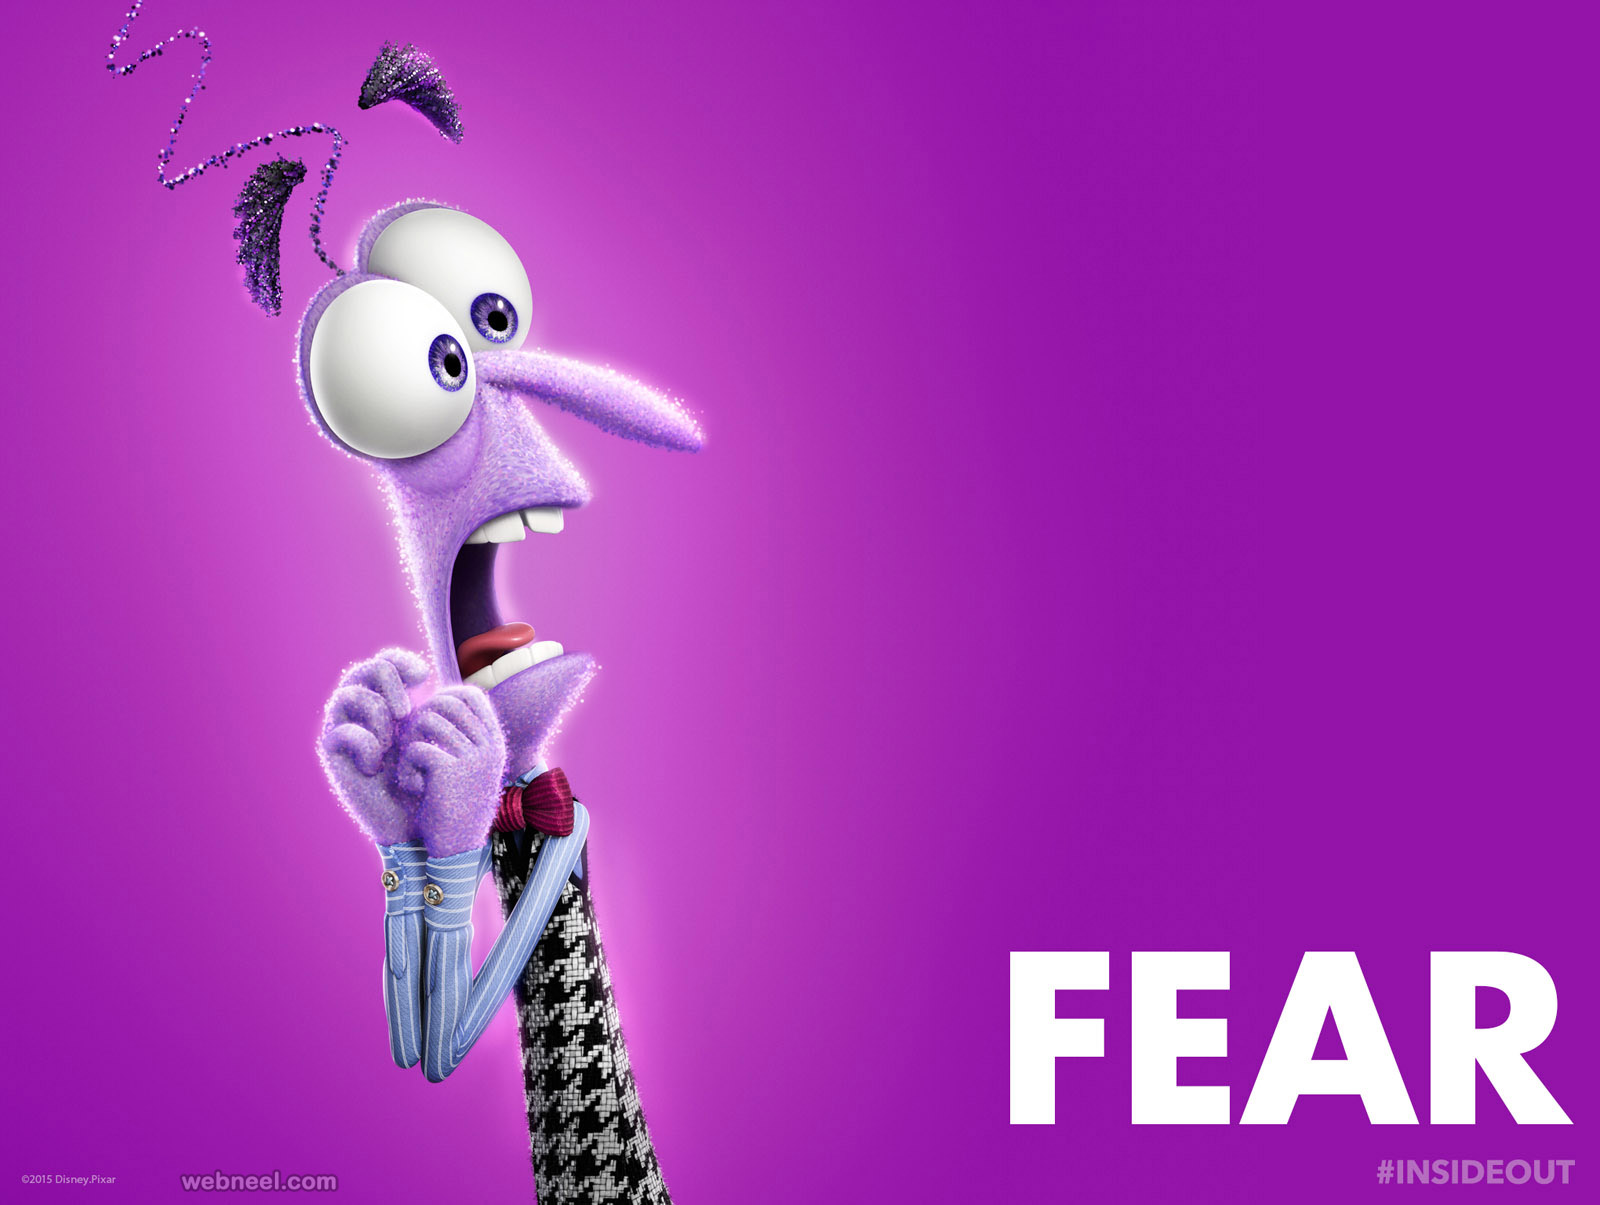 disney inside out characters fear